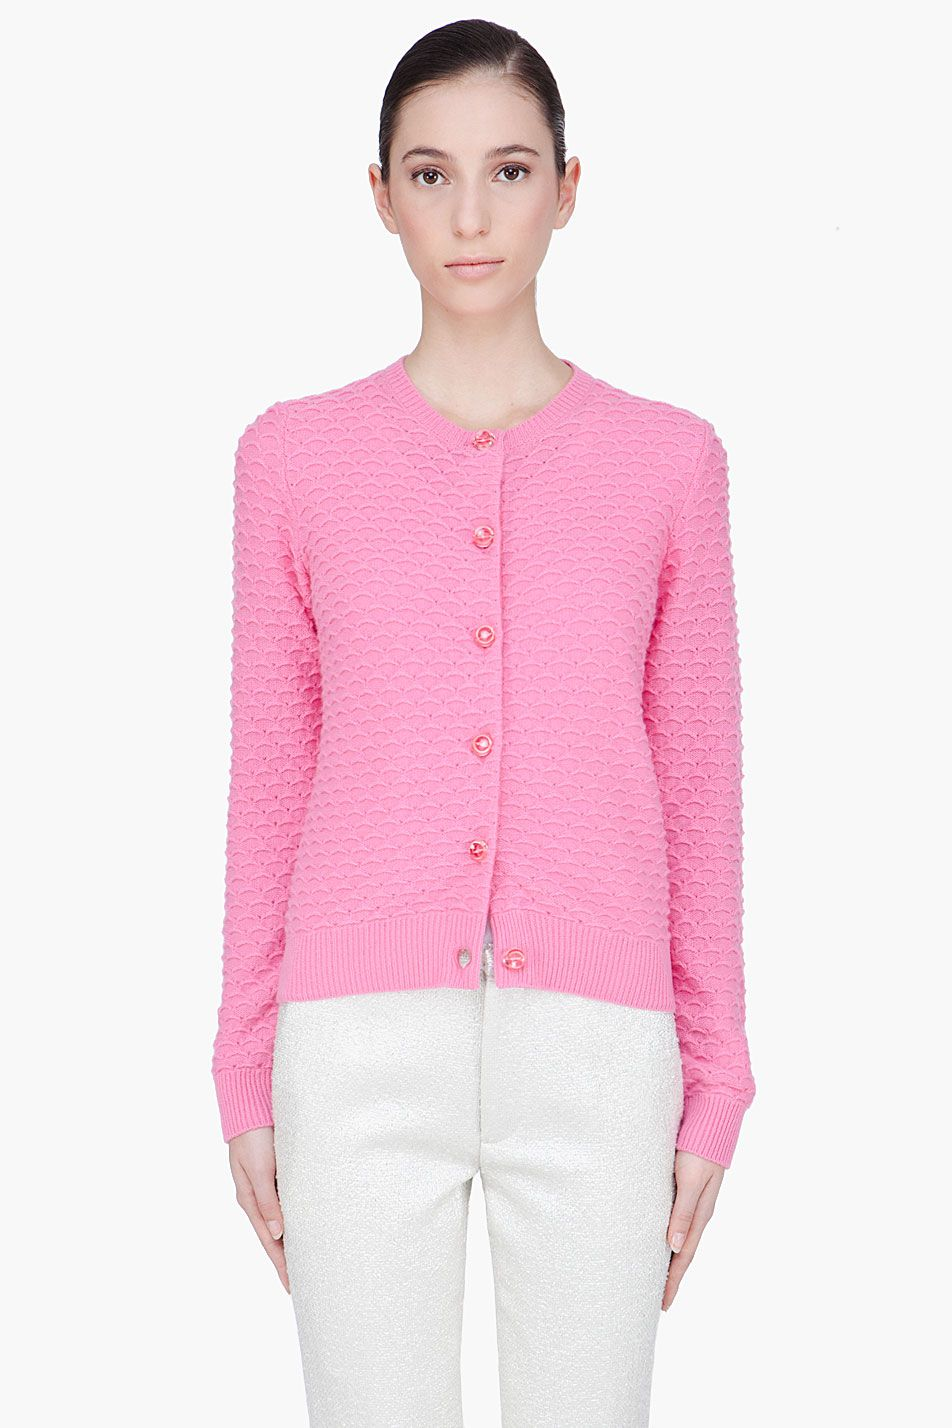 Marc Jacobs Pink Cashmere Knit Cardigan - Marc Jacobs Pink ...